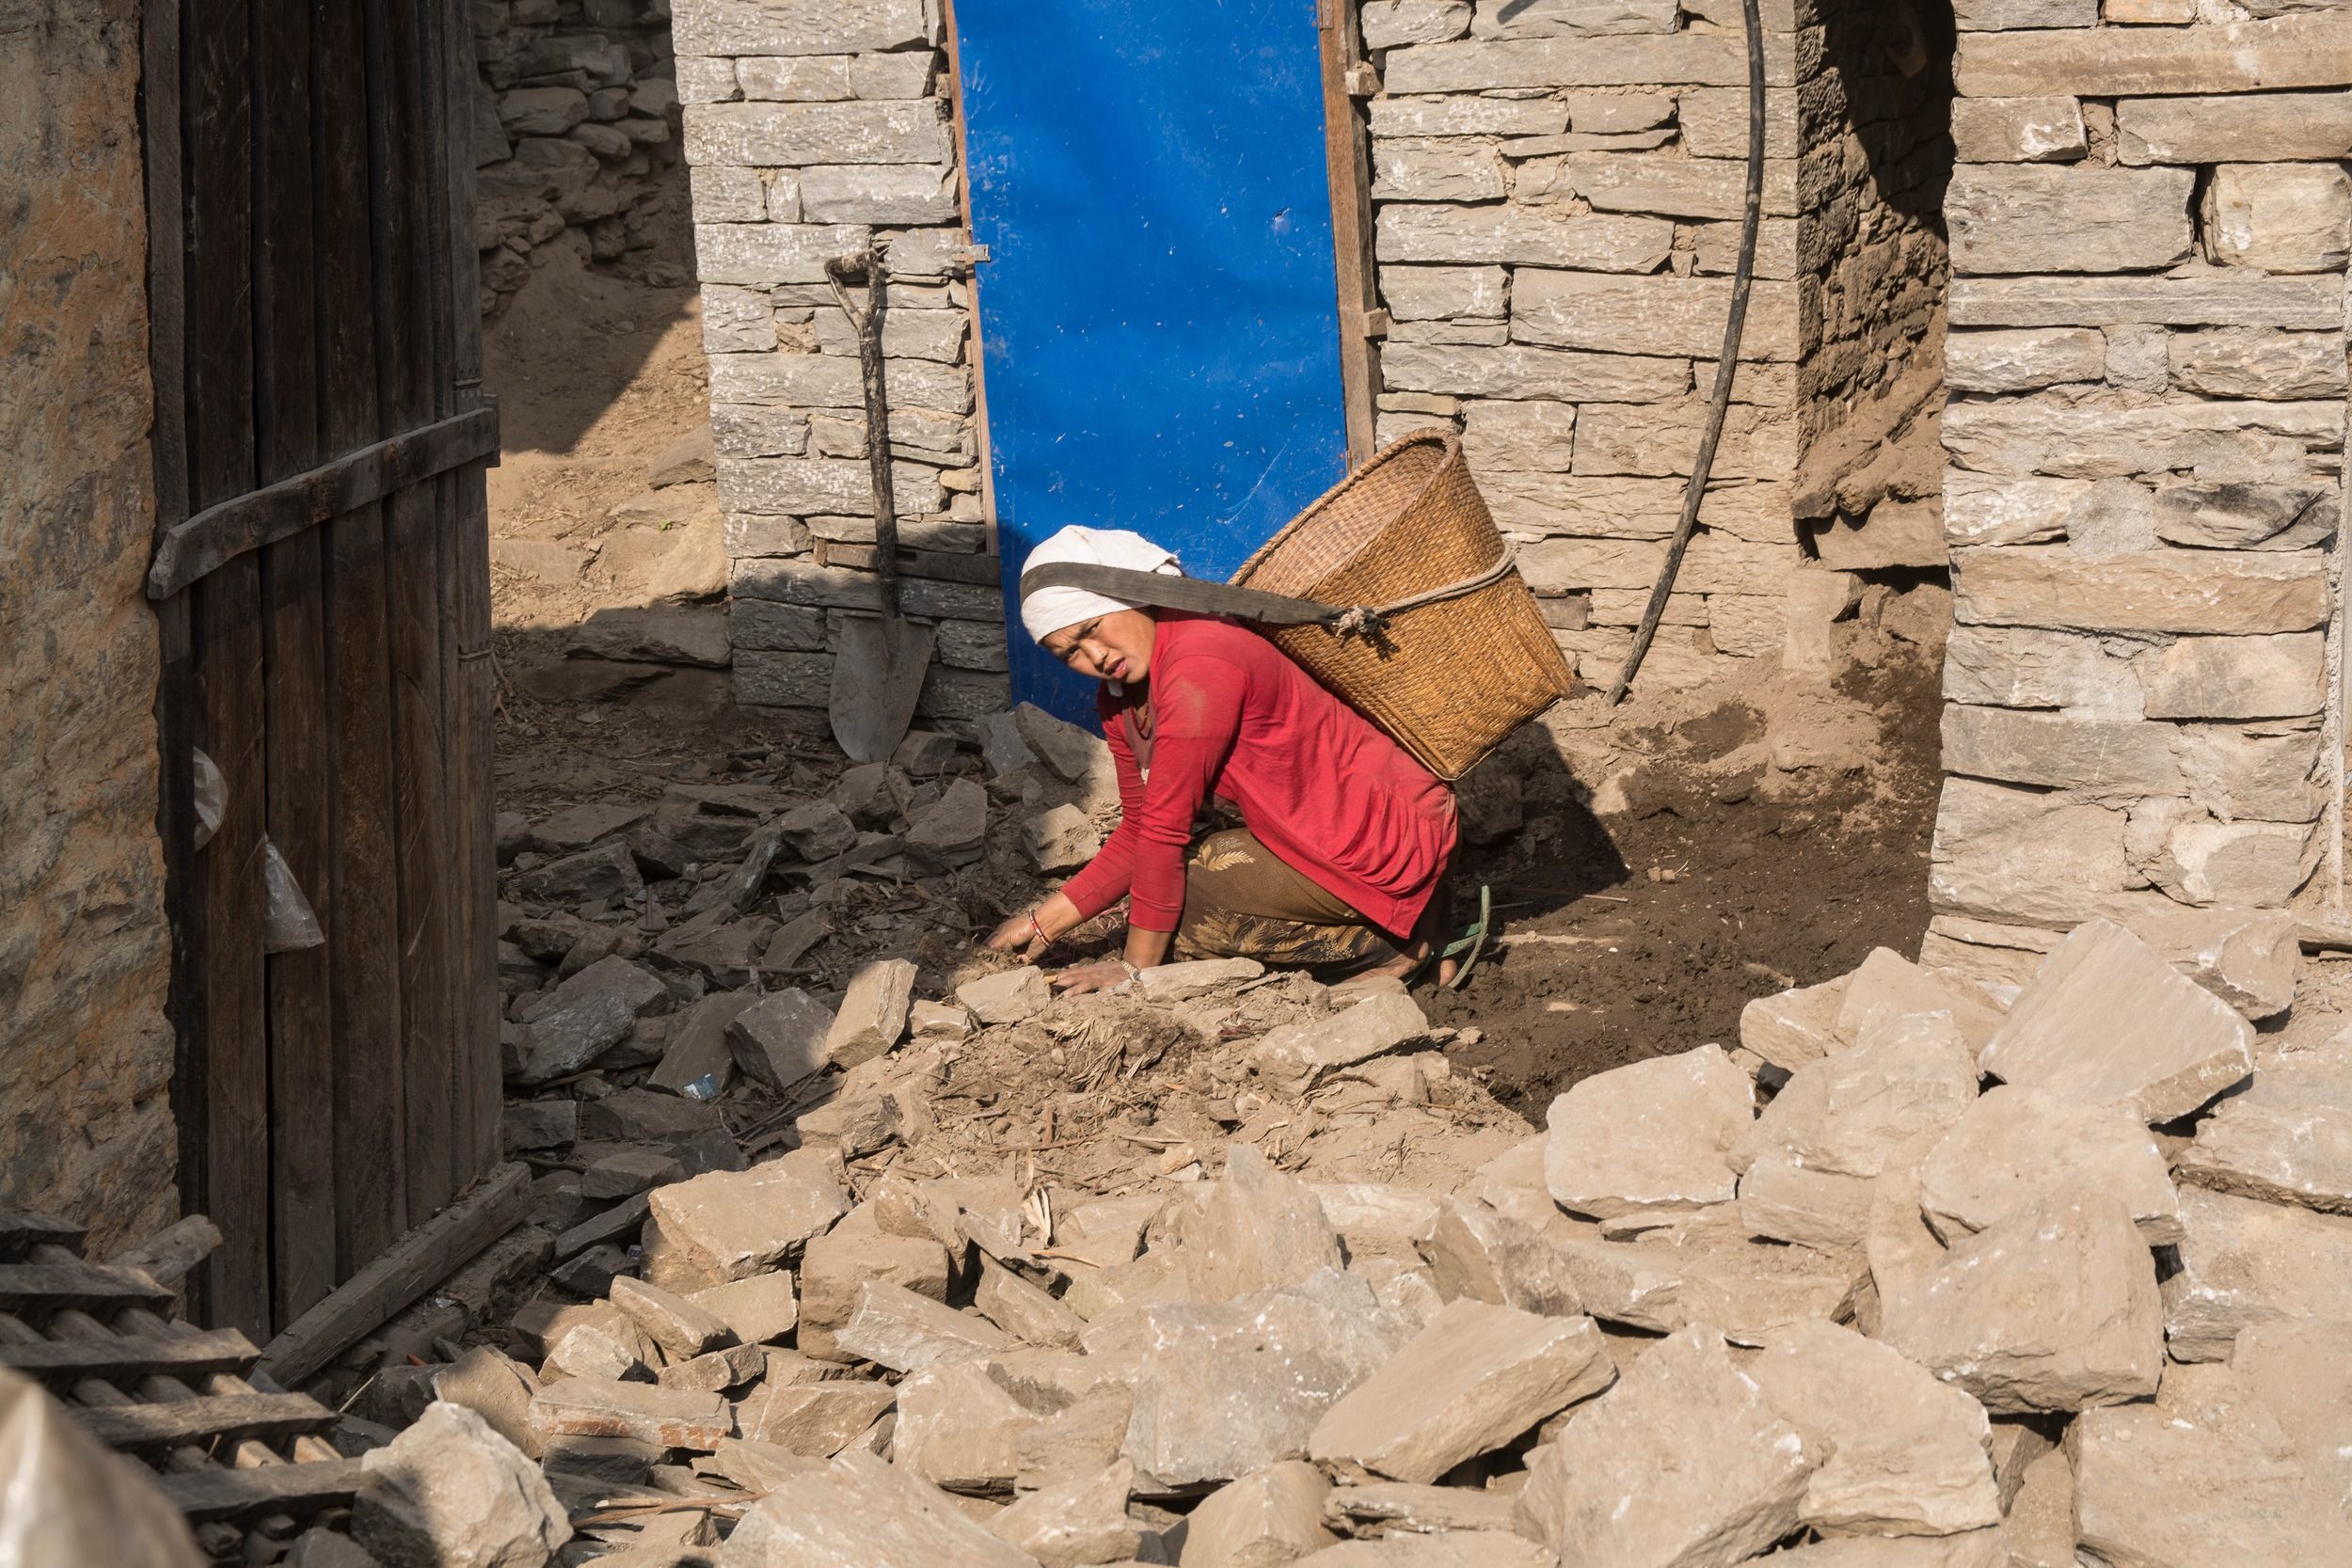 Many Nepalis who live in the rural, remote villages can neither afford nor have easy access to materials to reconstruct their homes. The best strategy is salvaging stone and wood from collapsed houses, but rebuilding them with more earthquake-resistant techniques - Photo by Mark Morrison.